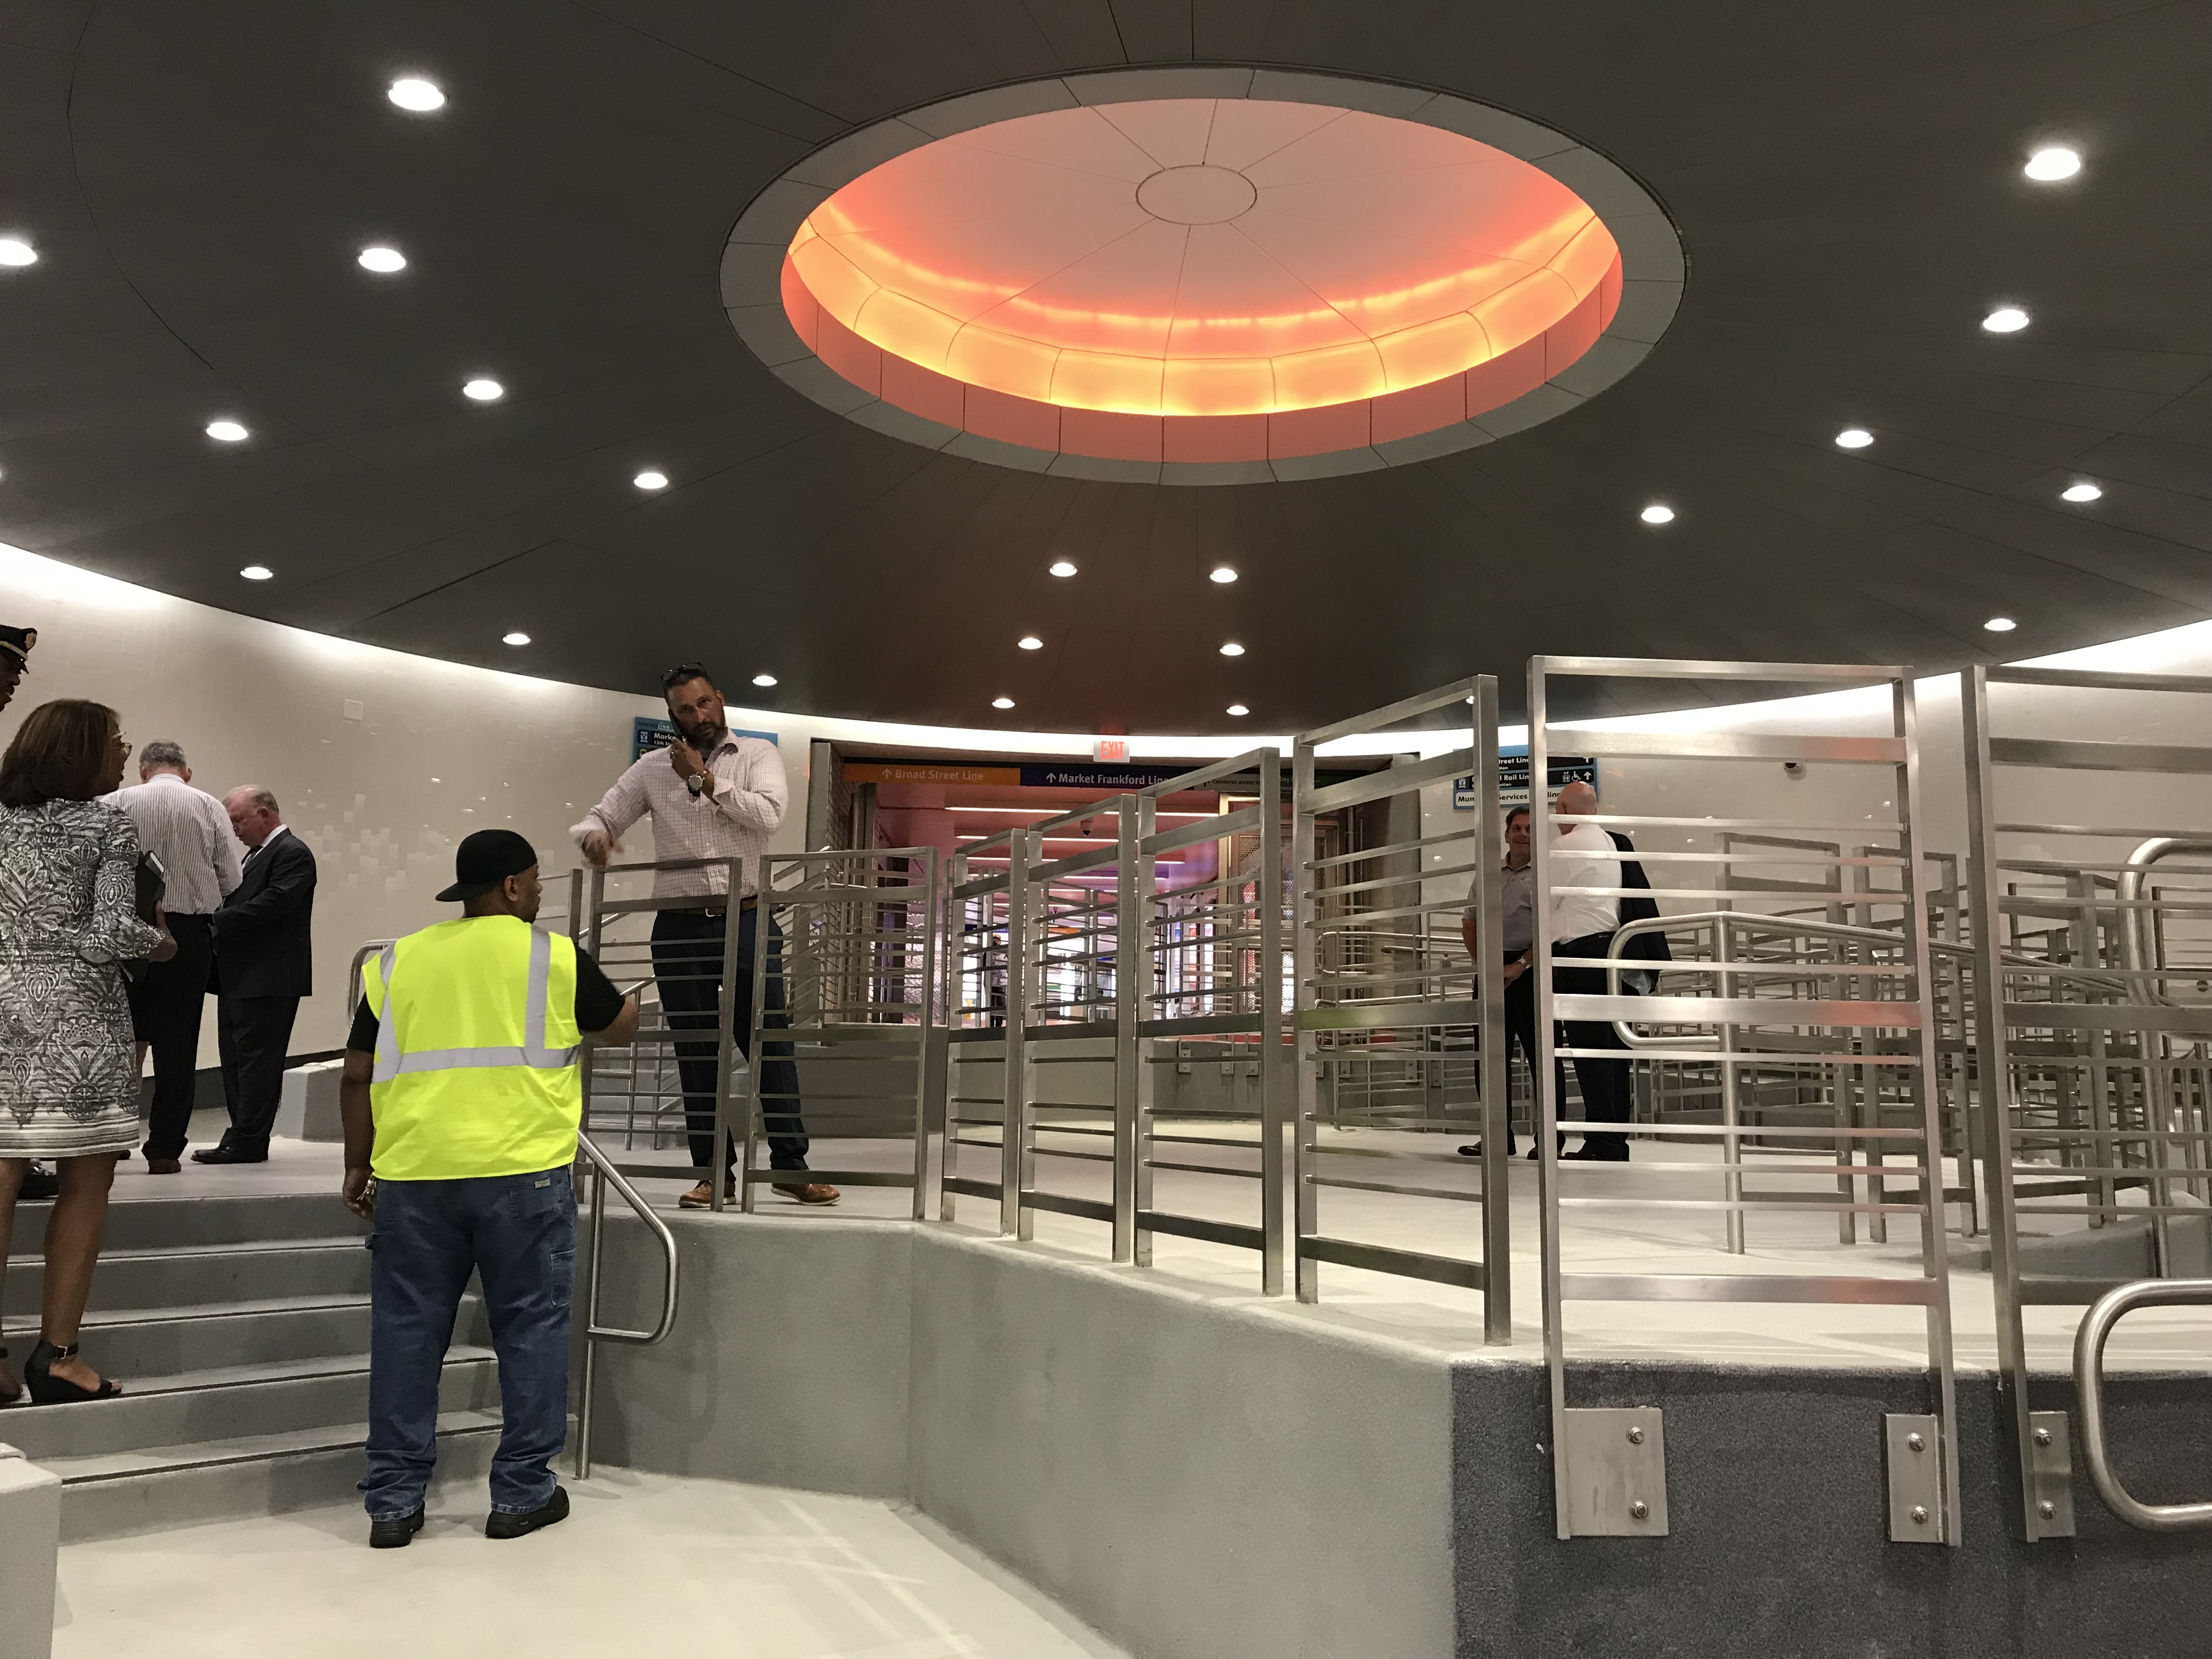 SEPTA´s $10 million face lift for the tunnels beneath Center City showed off a redesigned oculus and connecting walkways.